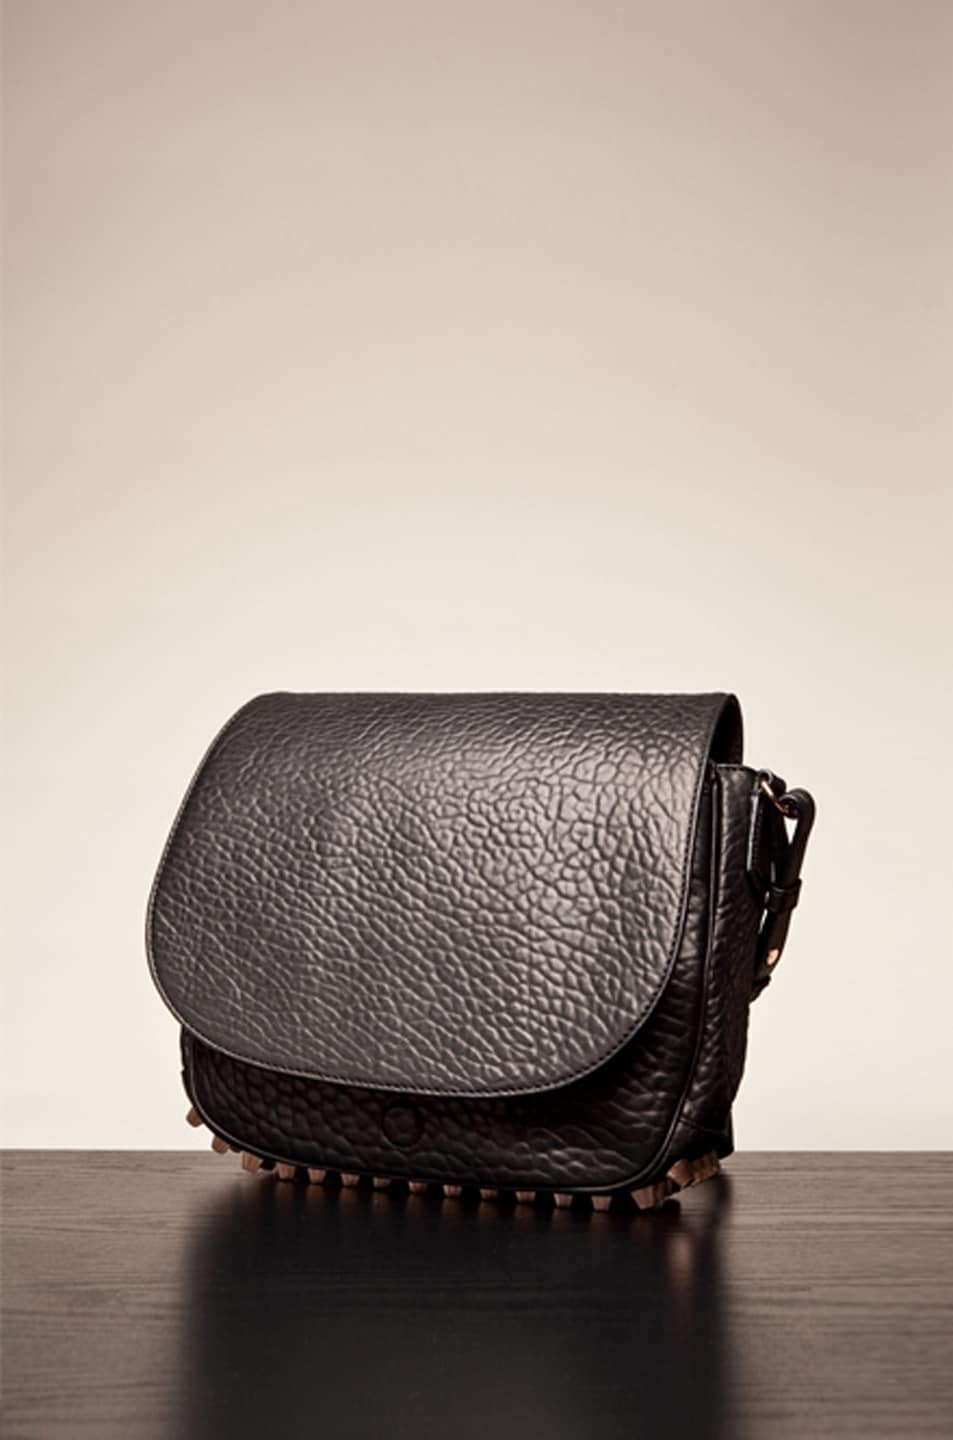 Image 1 of Alexander Wang Lia Sling in Black/Rose Gold